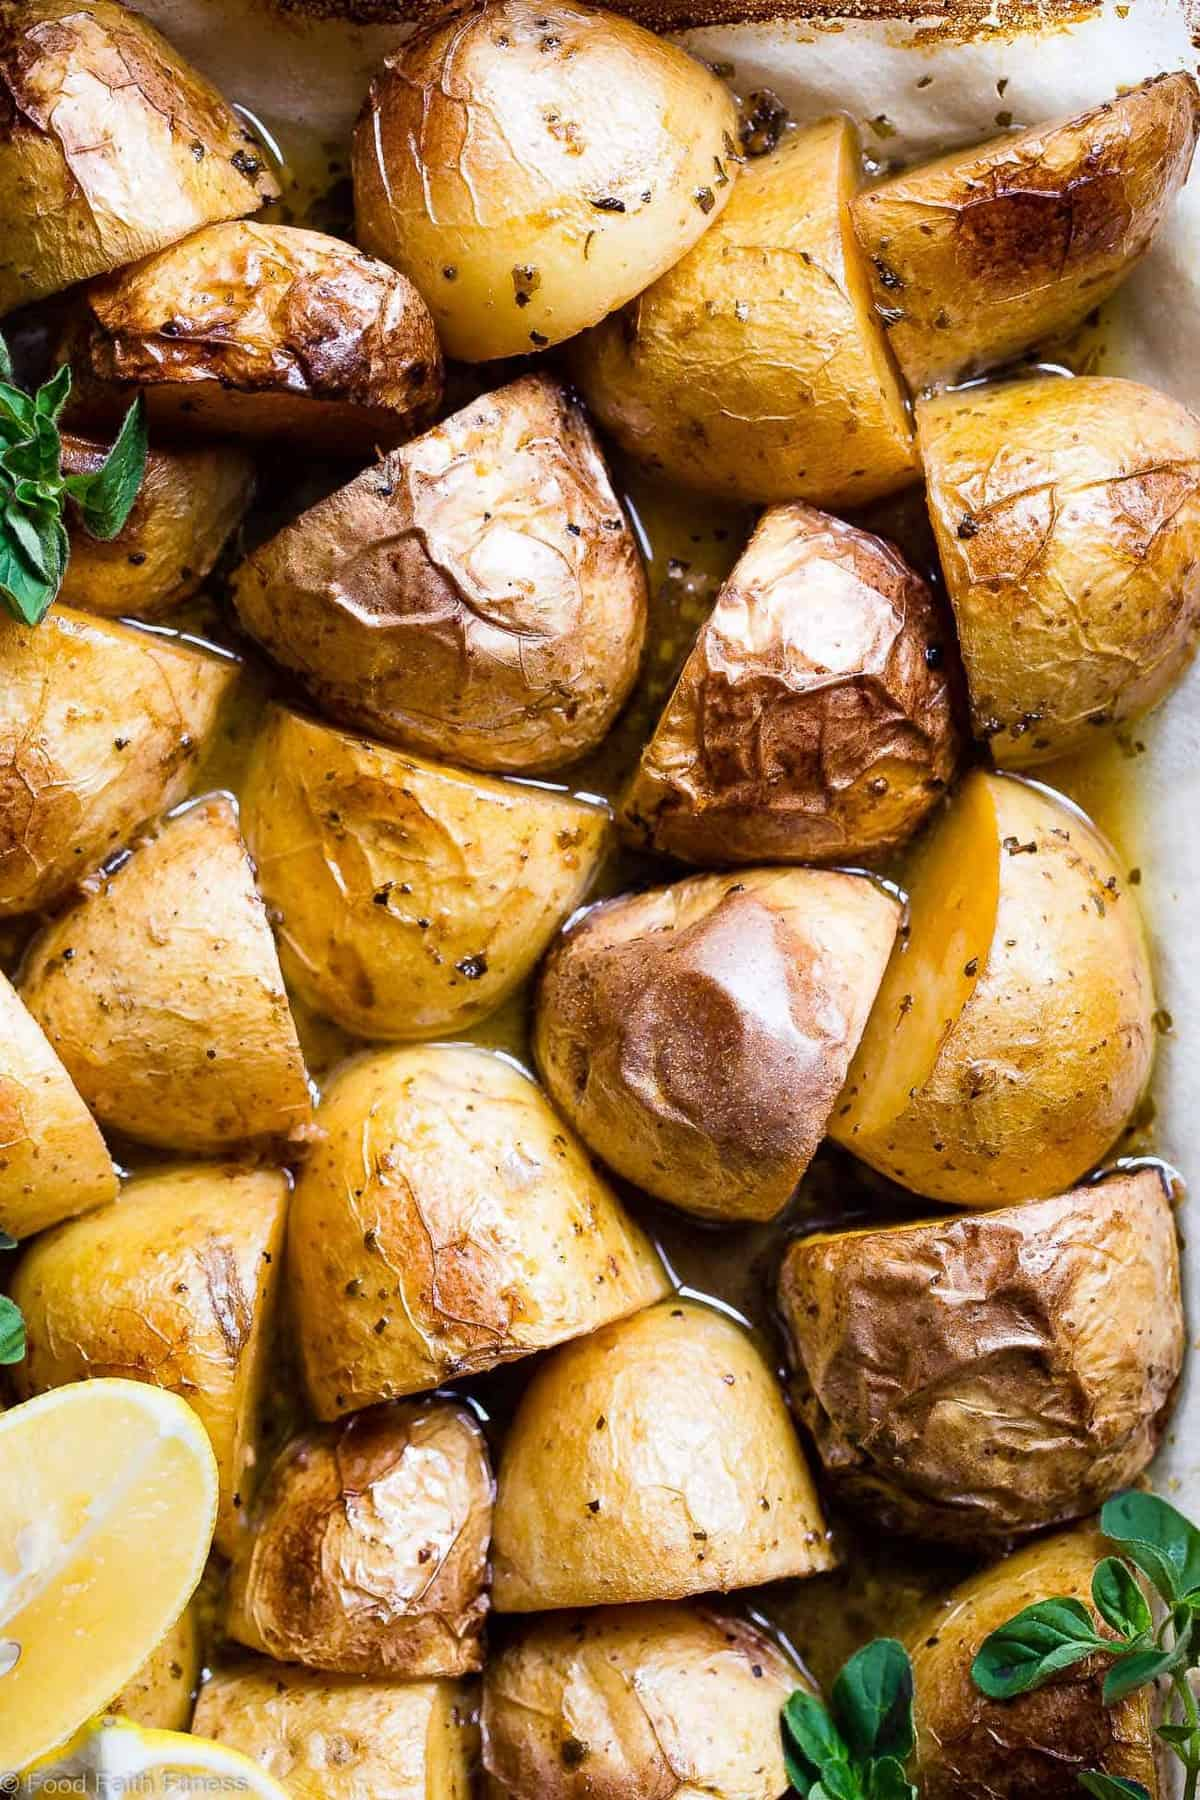 Oven Roasted Lemon Greek Potatoes - These are the BEST Oven Roasted Lemon Greek Potatoes! Tangy, zesty and so packed with flavor you will make them all the time! SO easy, whole30 complaint and vegan/ gluten free too! | #Foodfaithfitness | #Glutenfree #Vegan #Whole30 #Healthy #Dairyfree